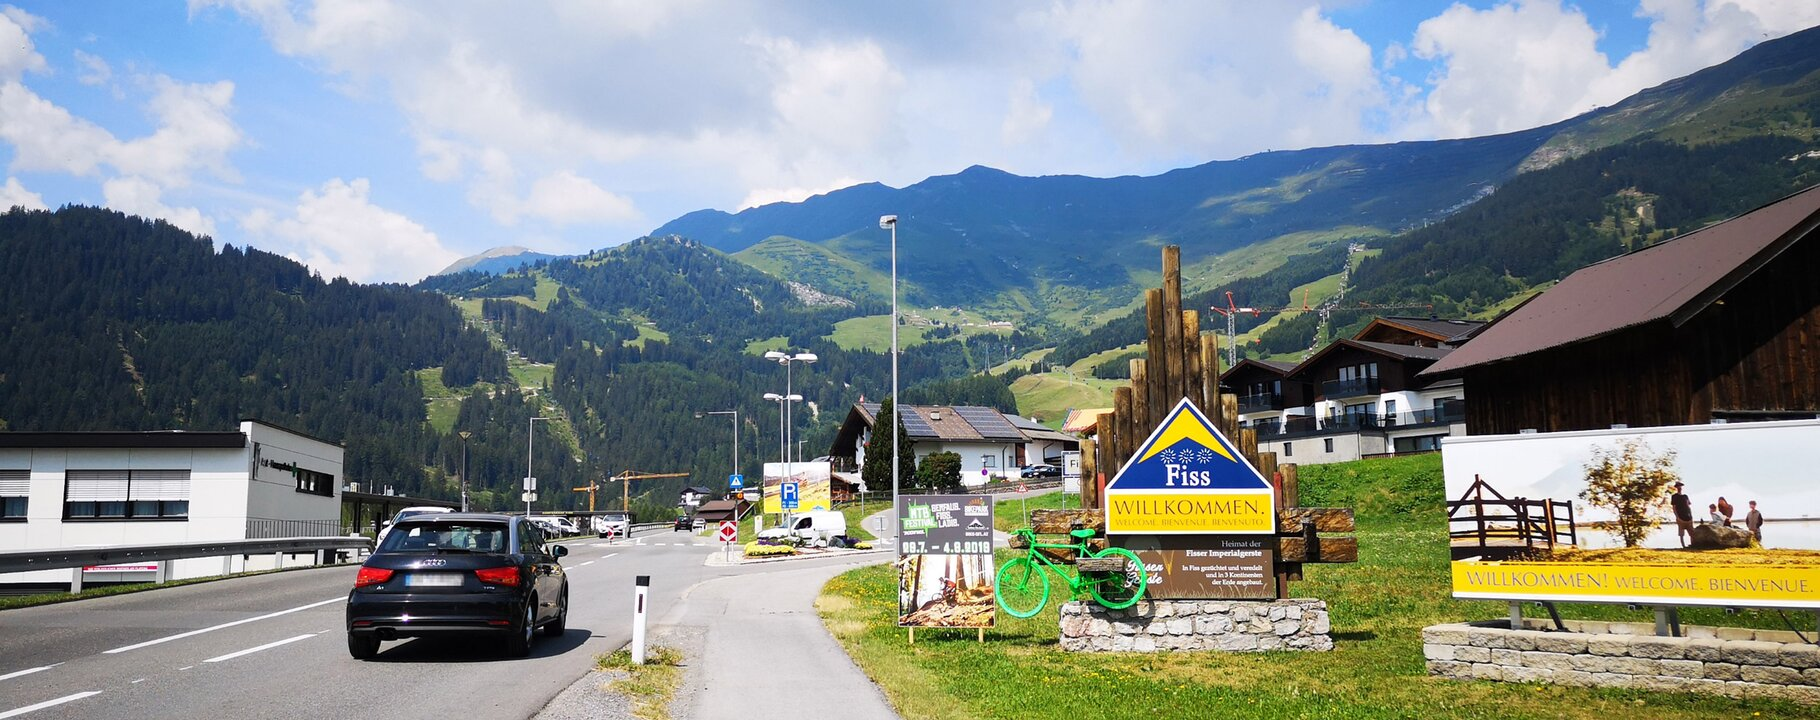 Arrival to Serfaus-Fiss-Ladis in Tyrol Austria | © Serfaus-Fiss-Ladis